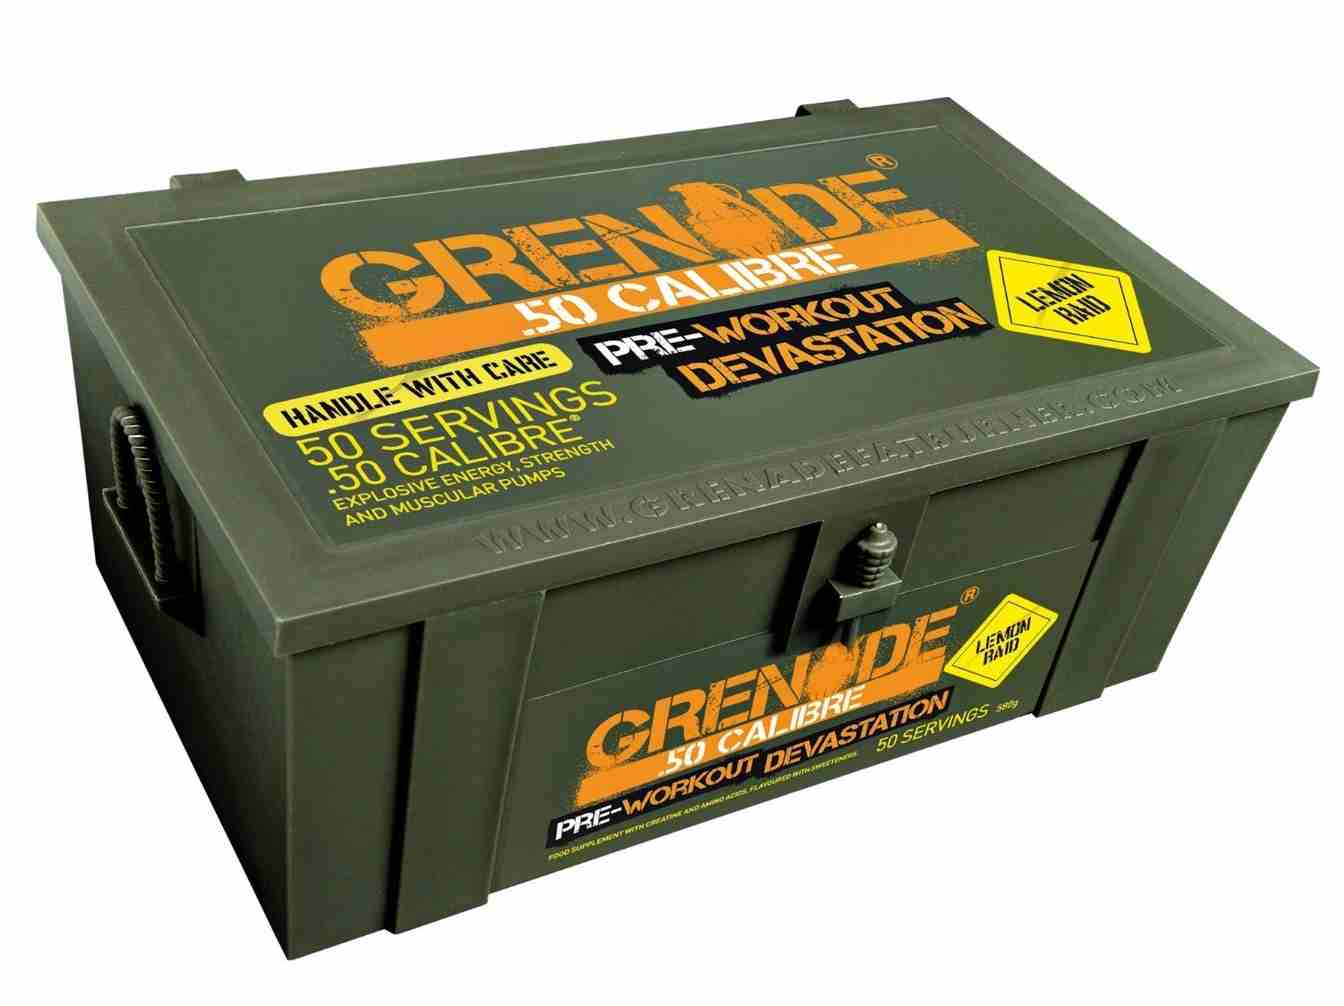 Grenade .50 Calibre Pre-Loaded (lemon raid) 580 g